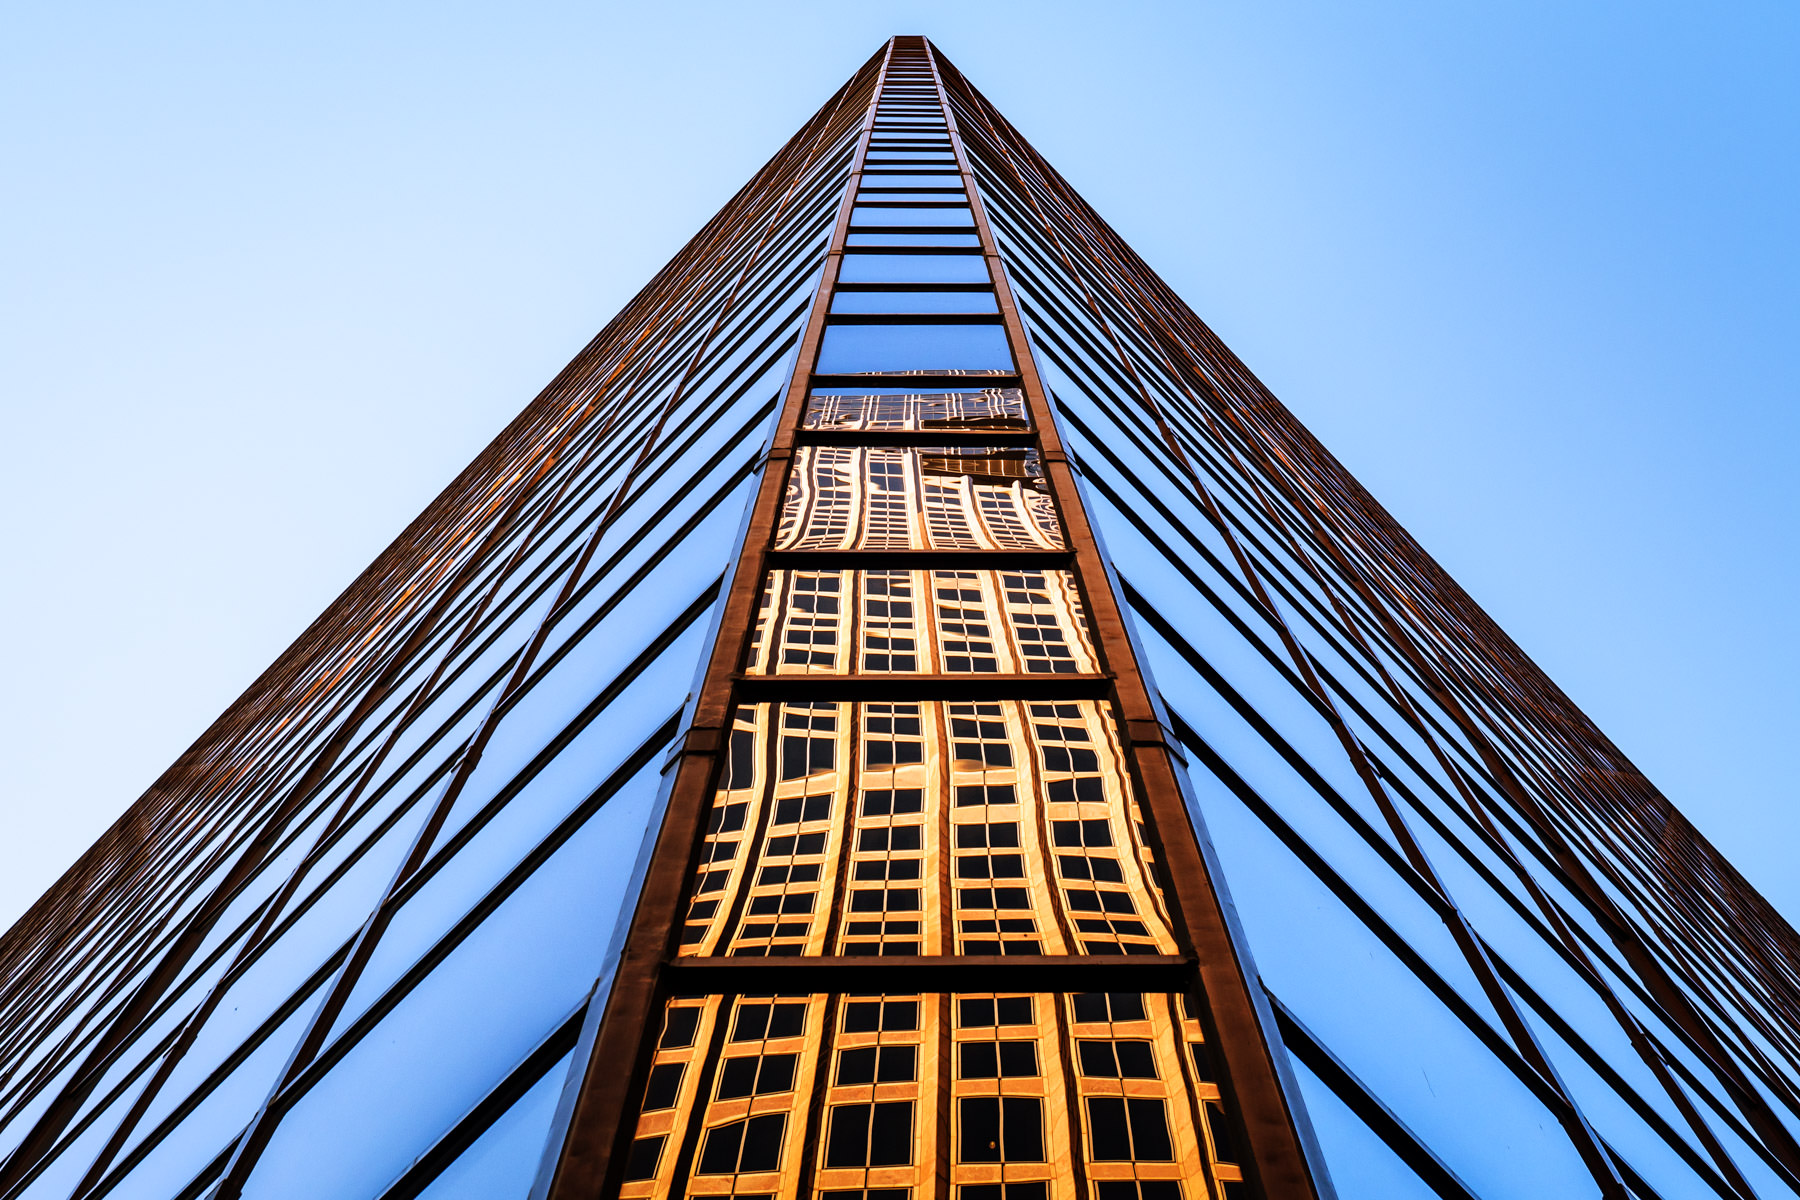 Downtown Dallas' Chase Tower is reflected in the windows of the north tower of the adjacent Plaza of the Americas.